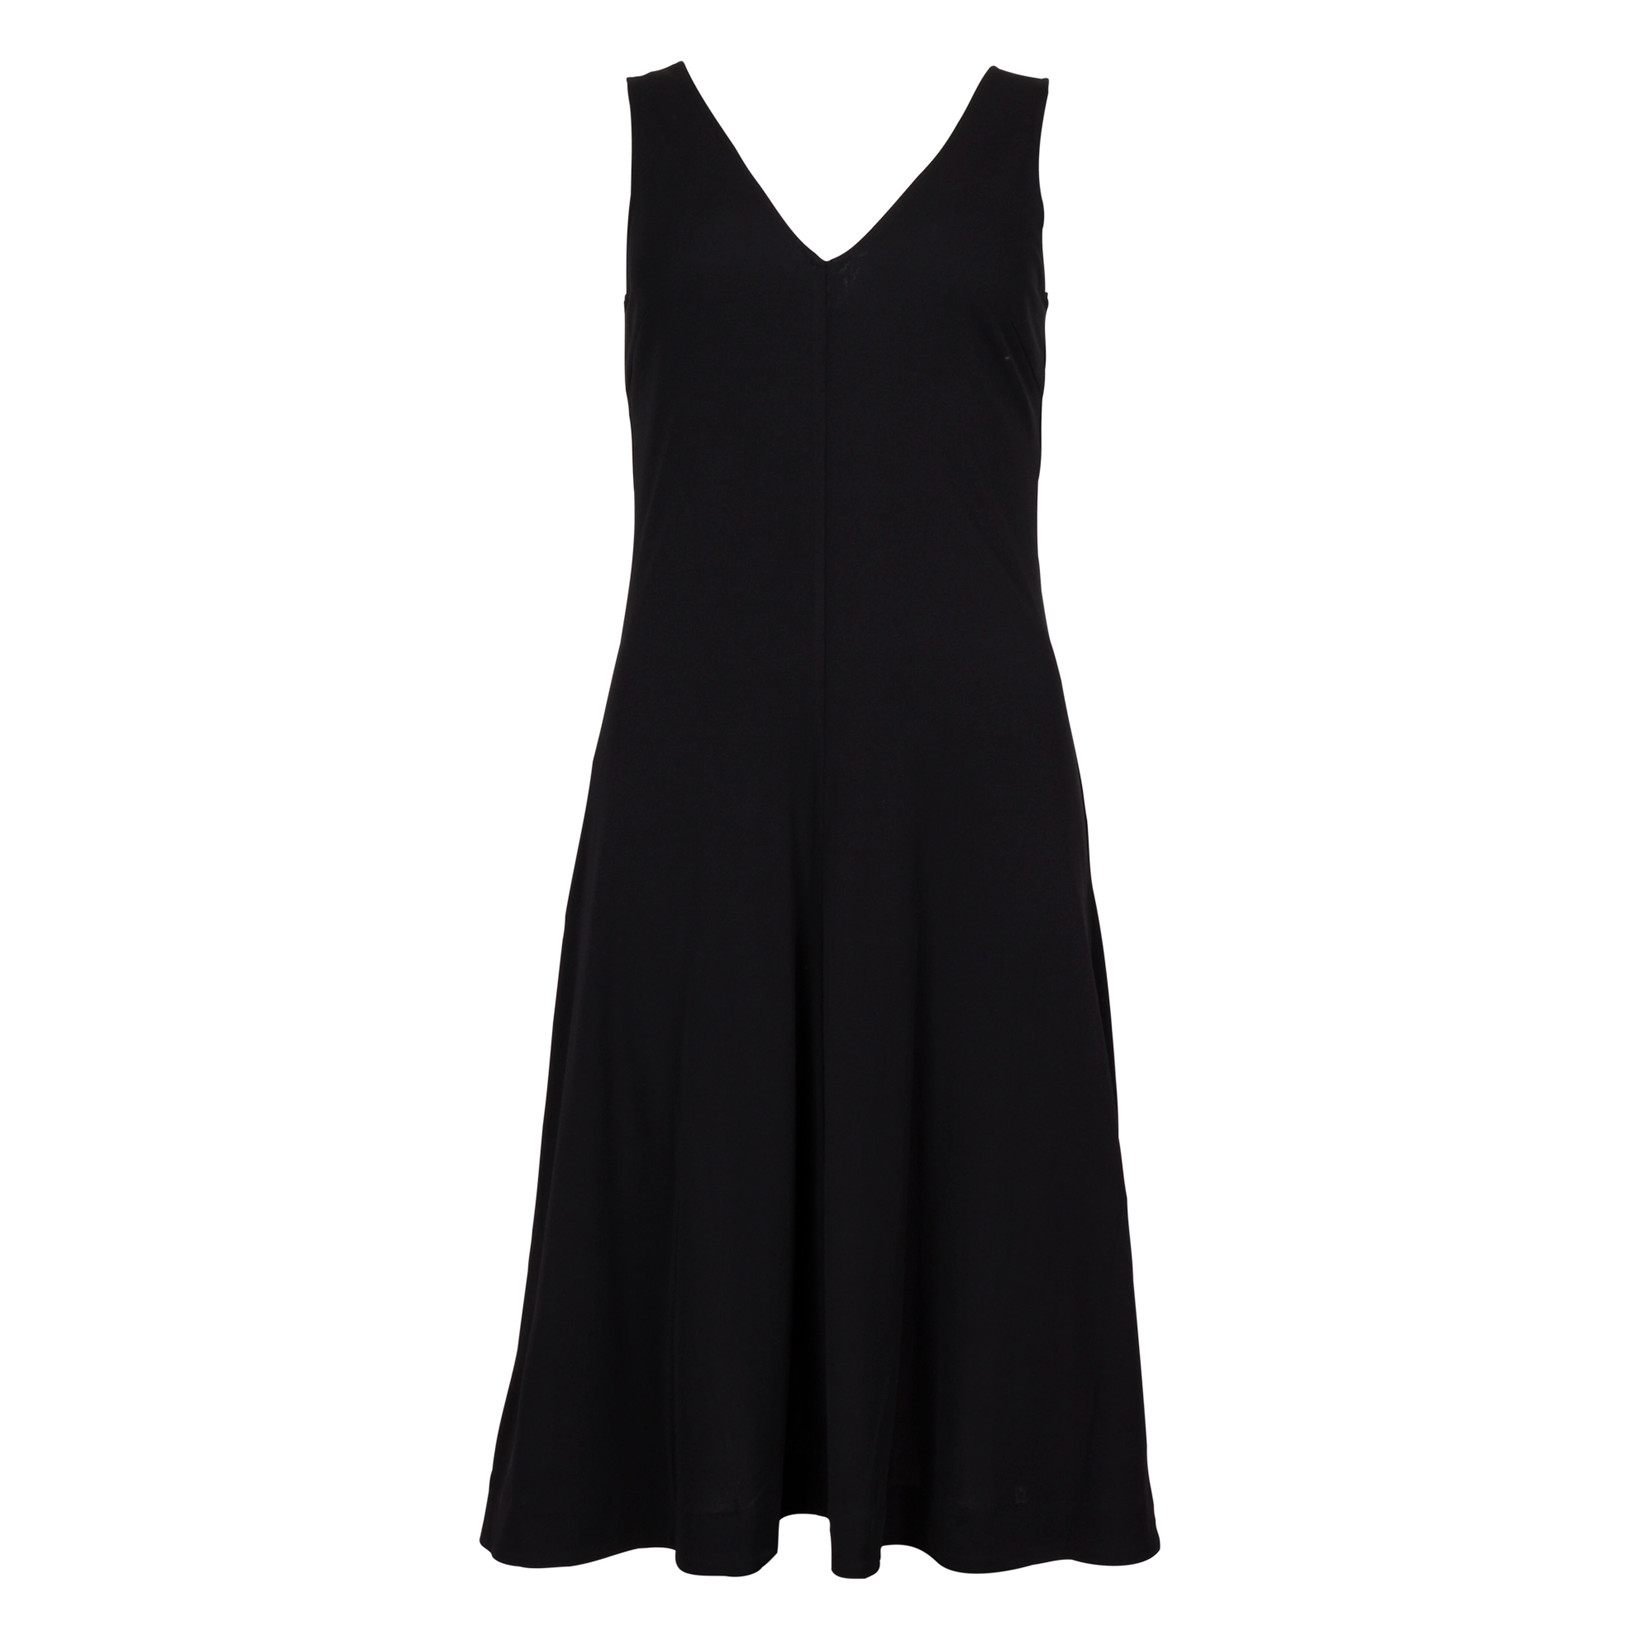 TIGER WOMAN EMERLY DRESS BLACK